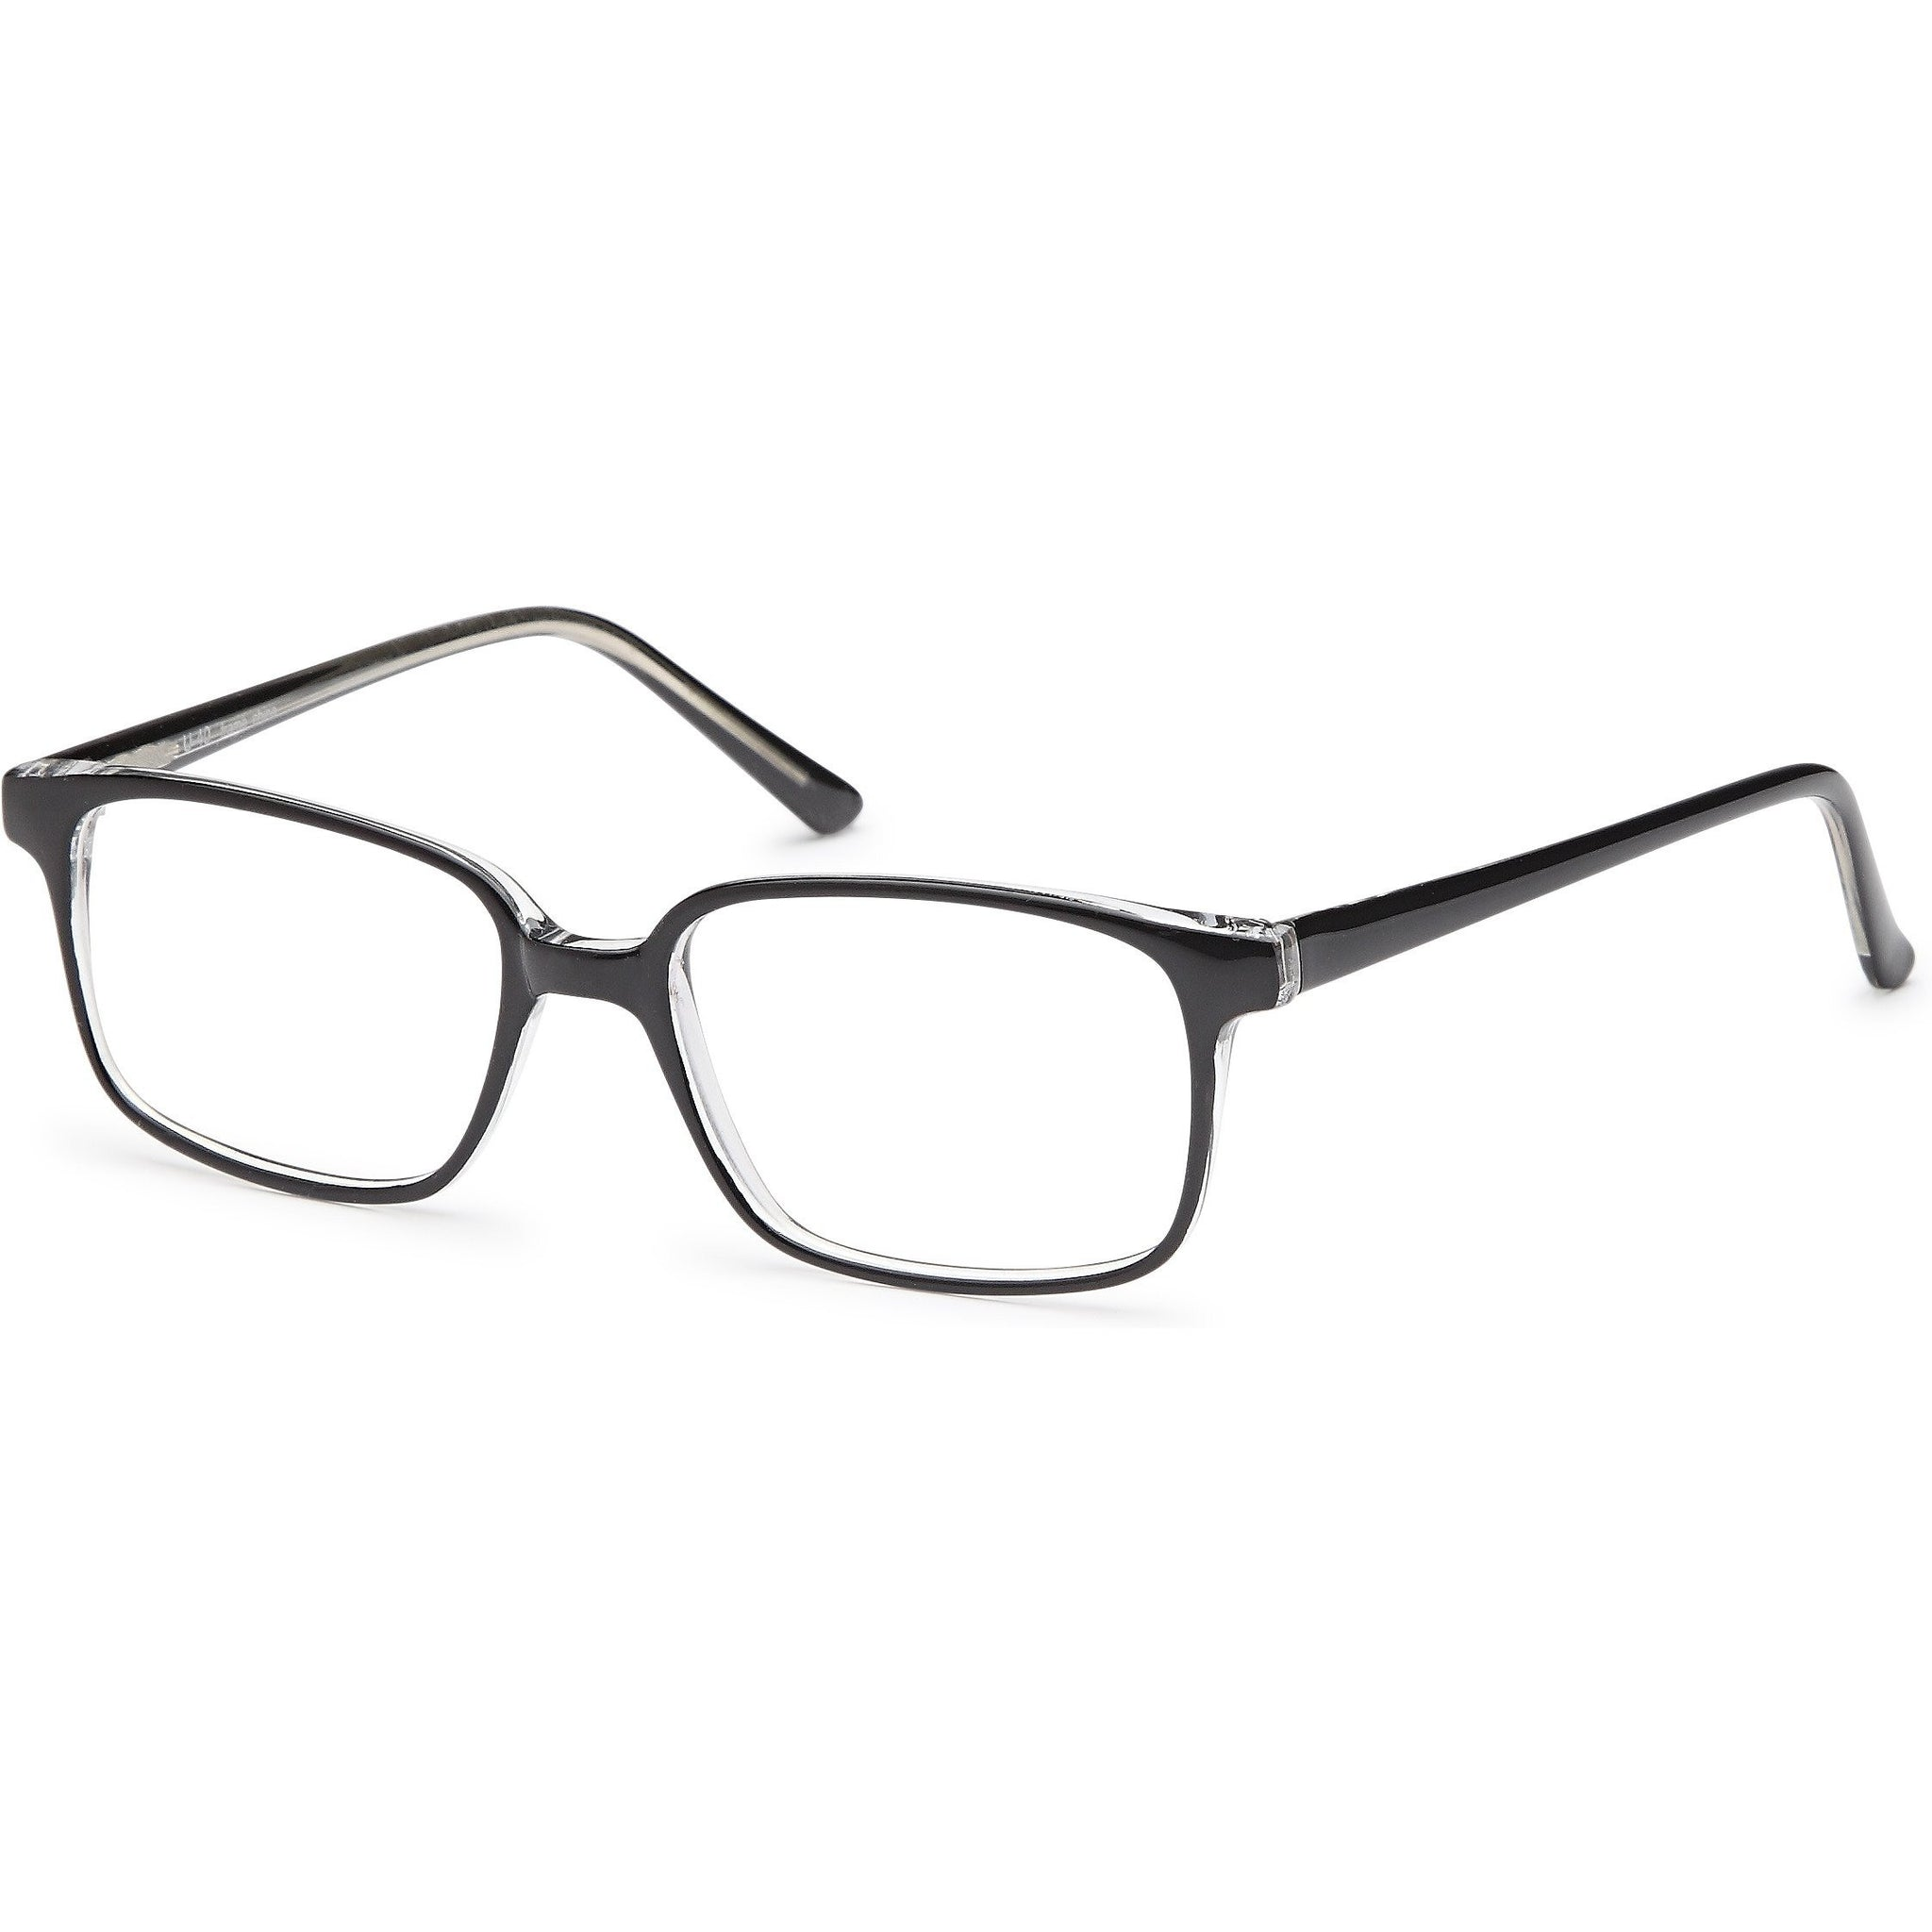 2U Prescription Glasses U 40 Optical Eyeglasses Frames